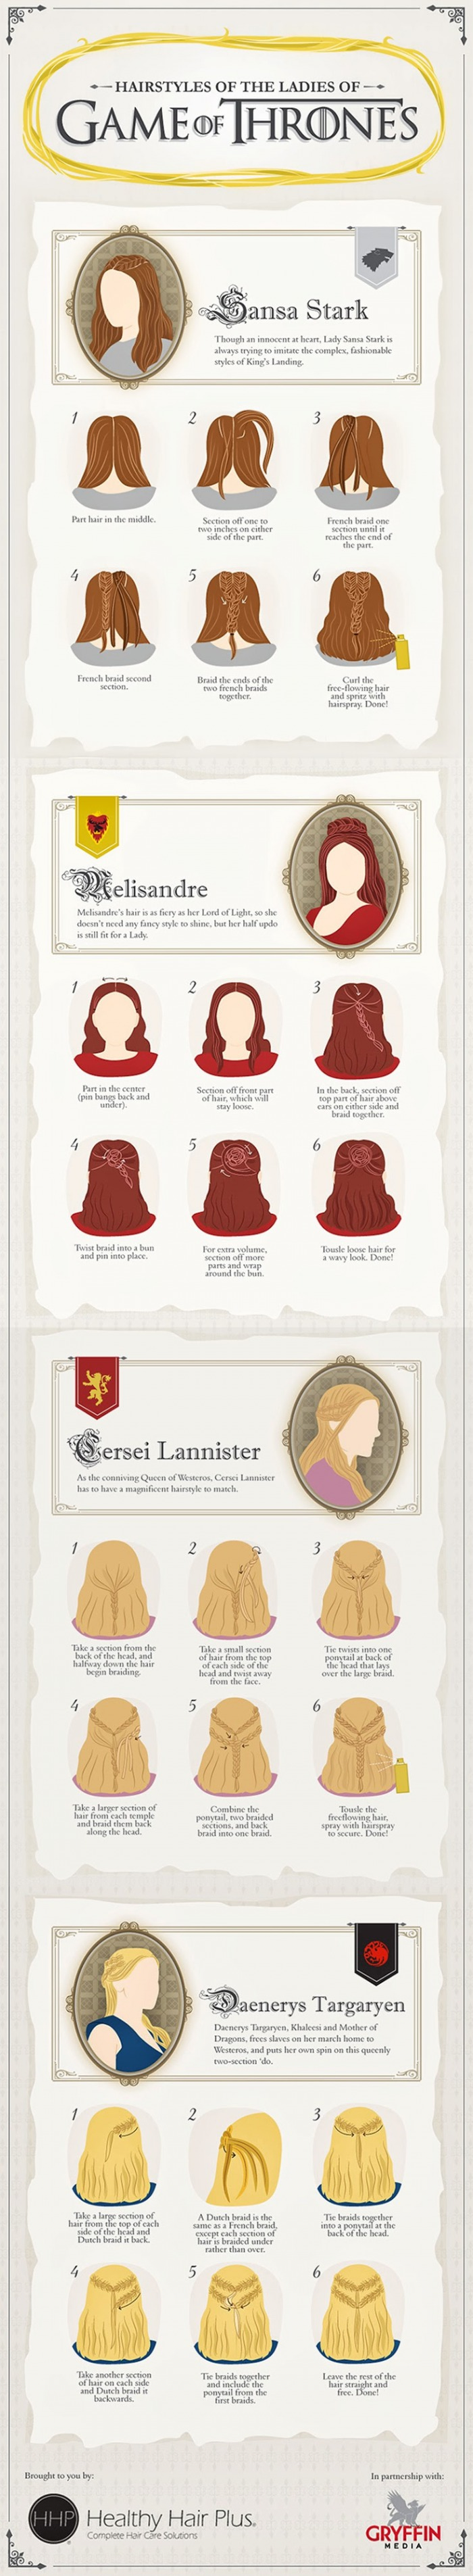 Hairstyles-from-the-Game-of-Thrones-TV-Series.jpg